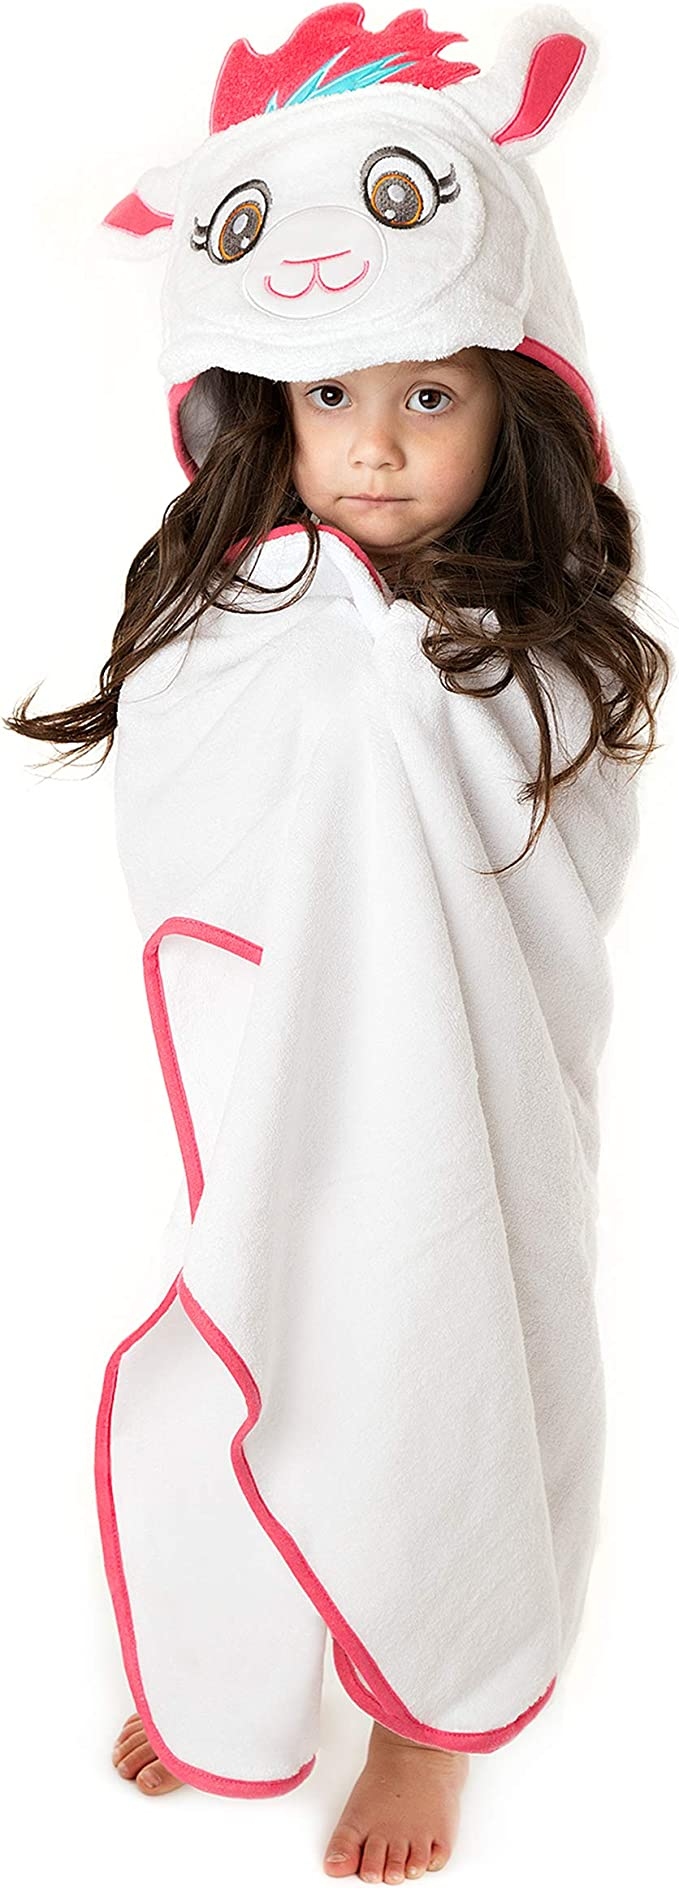 Amazon.com: Premium Hooded Towel for Kids | Llama Design | Ultra Soft and Extra Large | 100% Cotton Bath Towel with Hood for Girls by Little Tinkers World: Kitchen & Dining